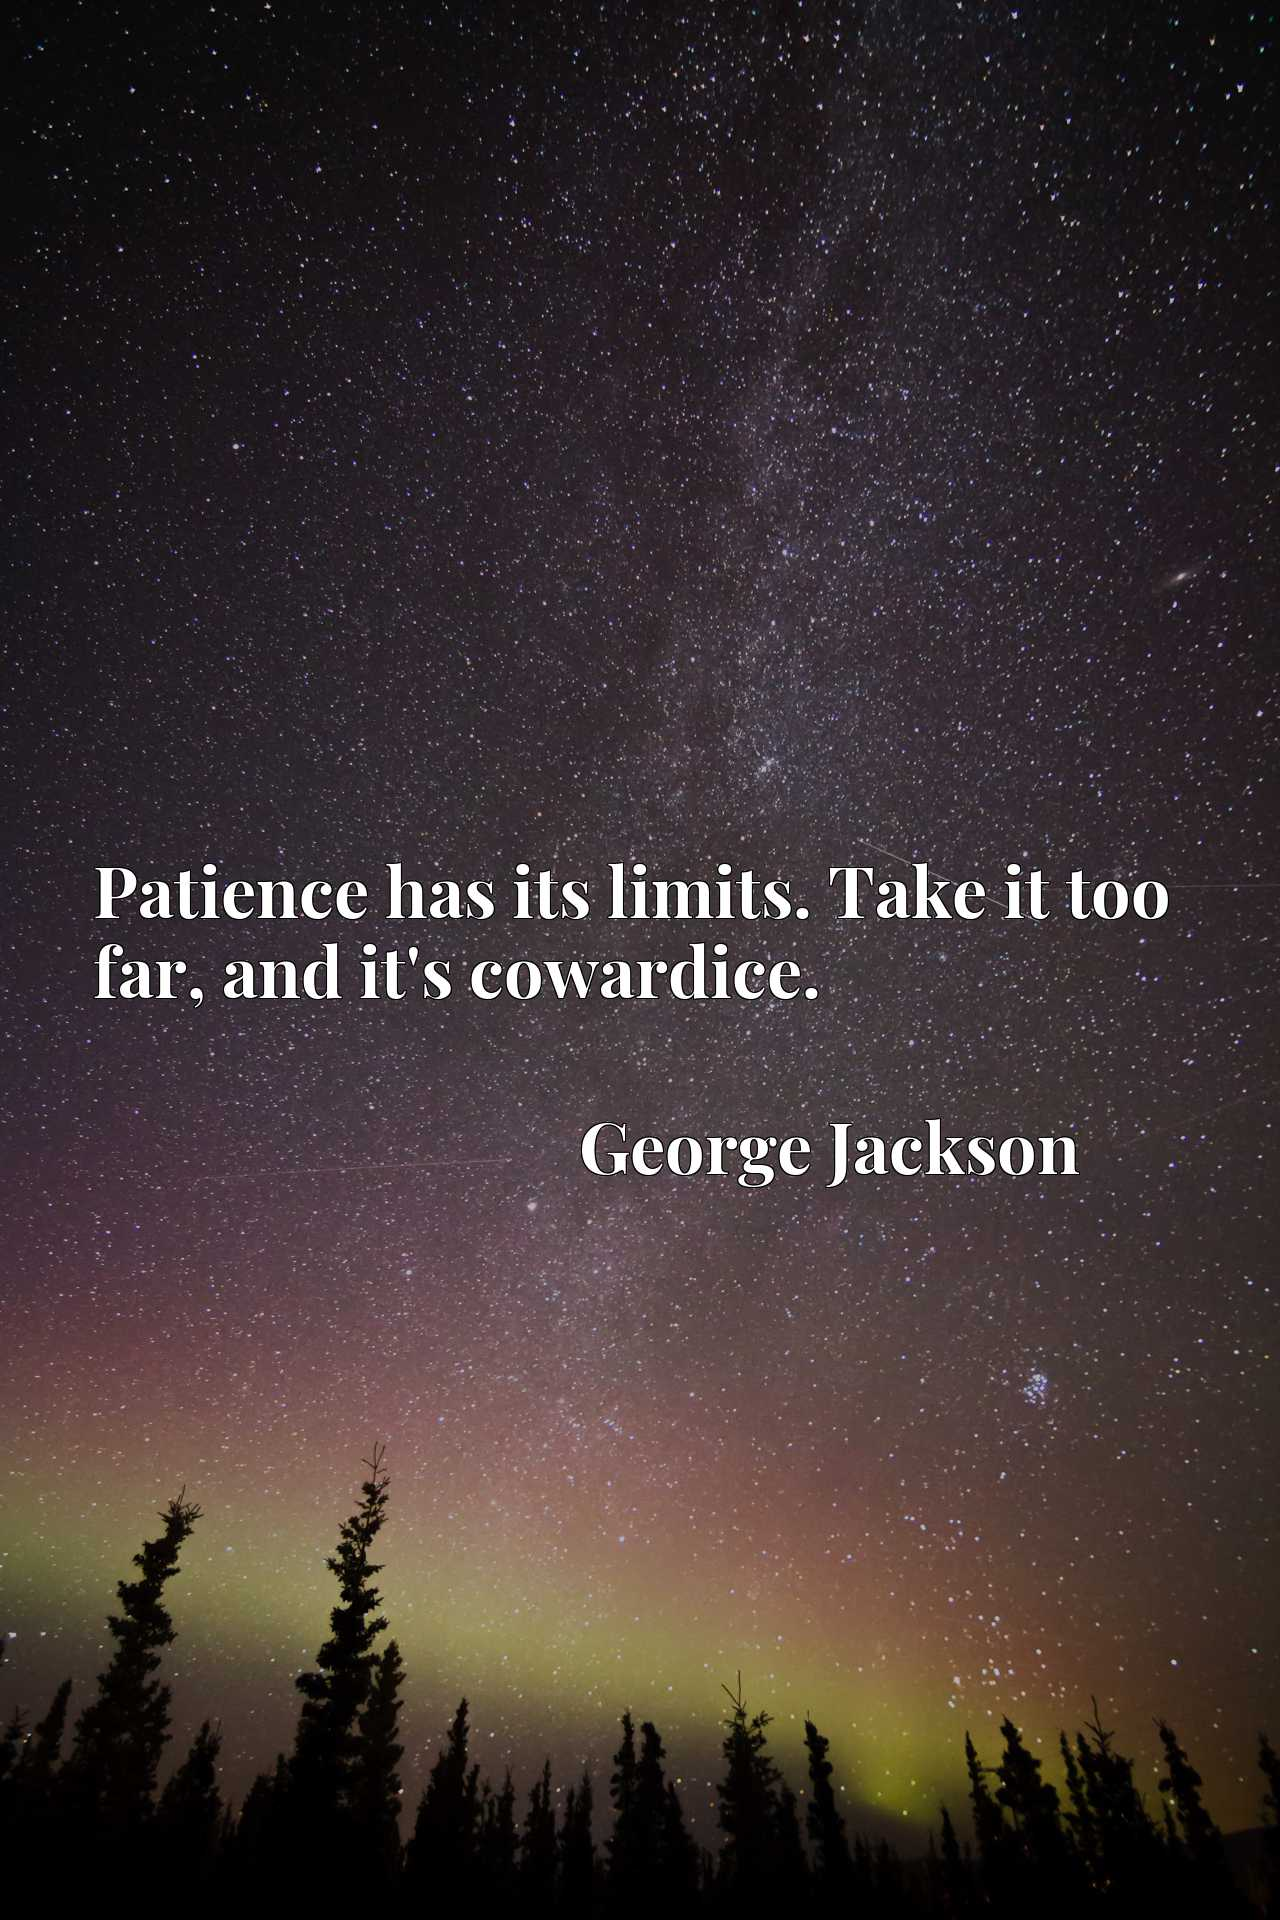 Quote Picture :Patience has its limits. Take it too far, and it's cowardice.